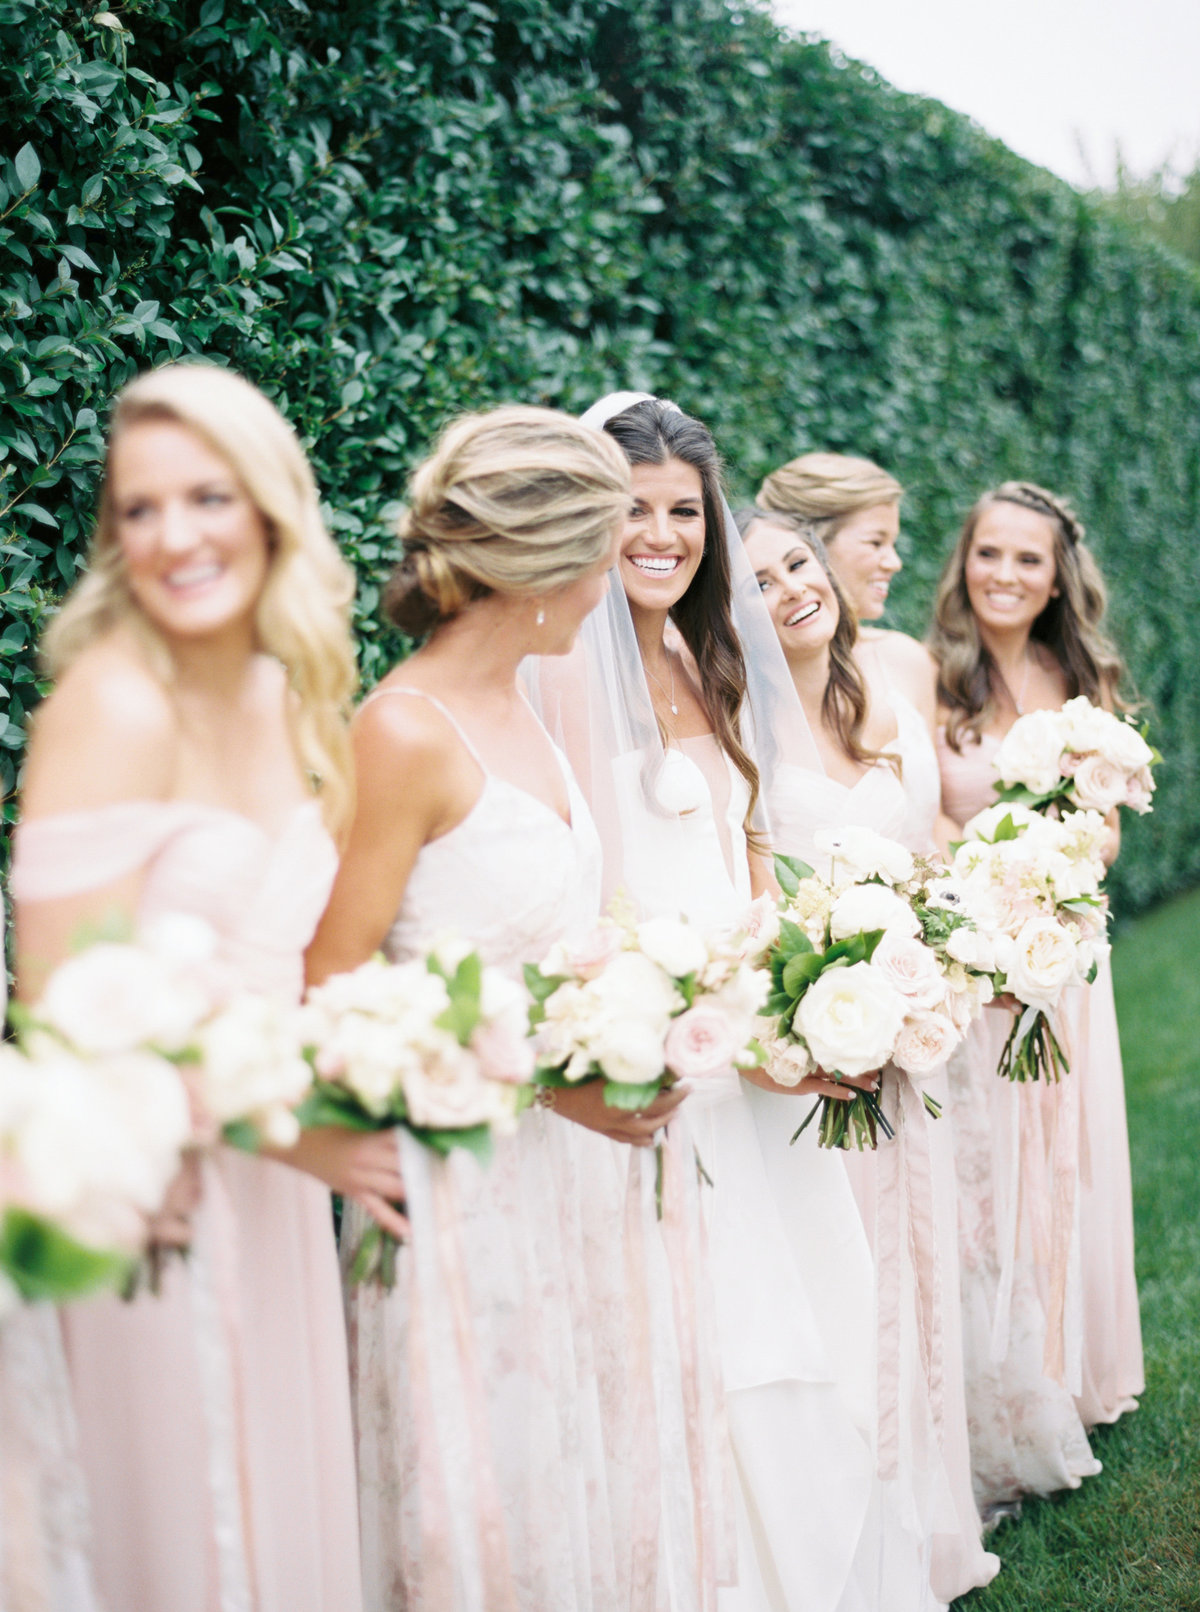 Blush bridesmaids dresses for Cape Cod wedding weekend by top destination wedding planner Always Yours Events